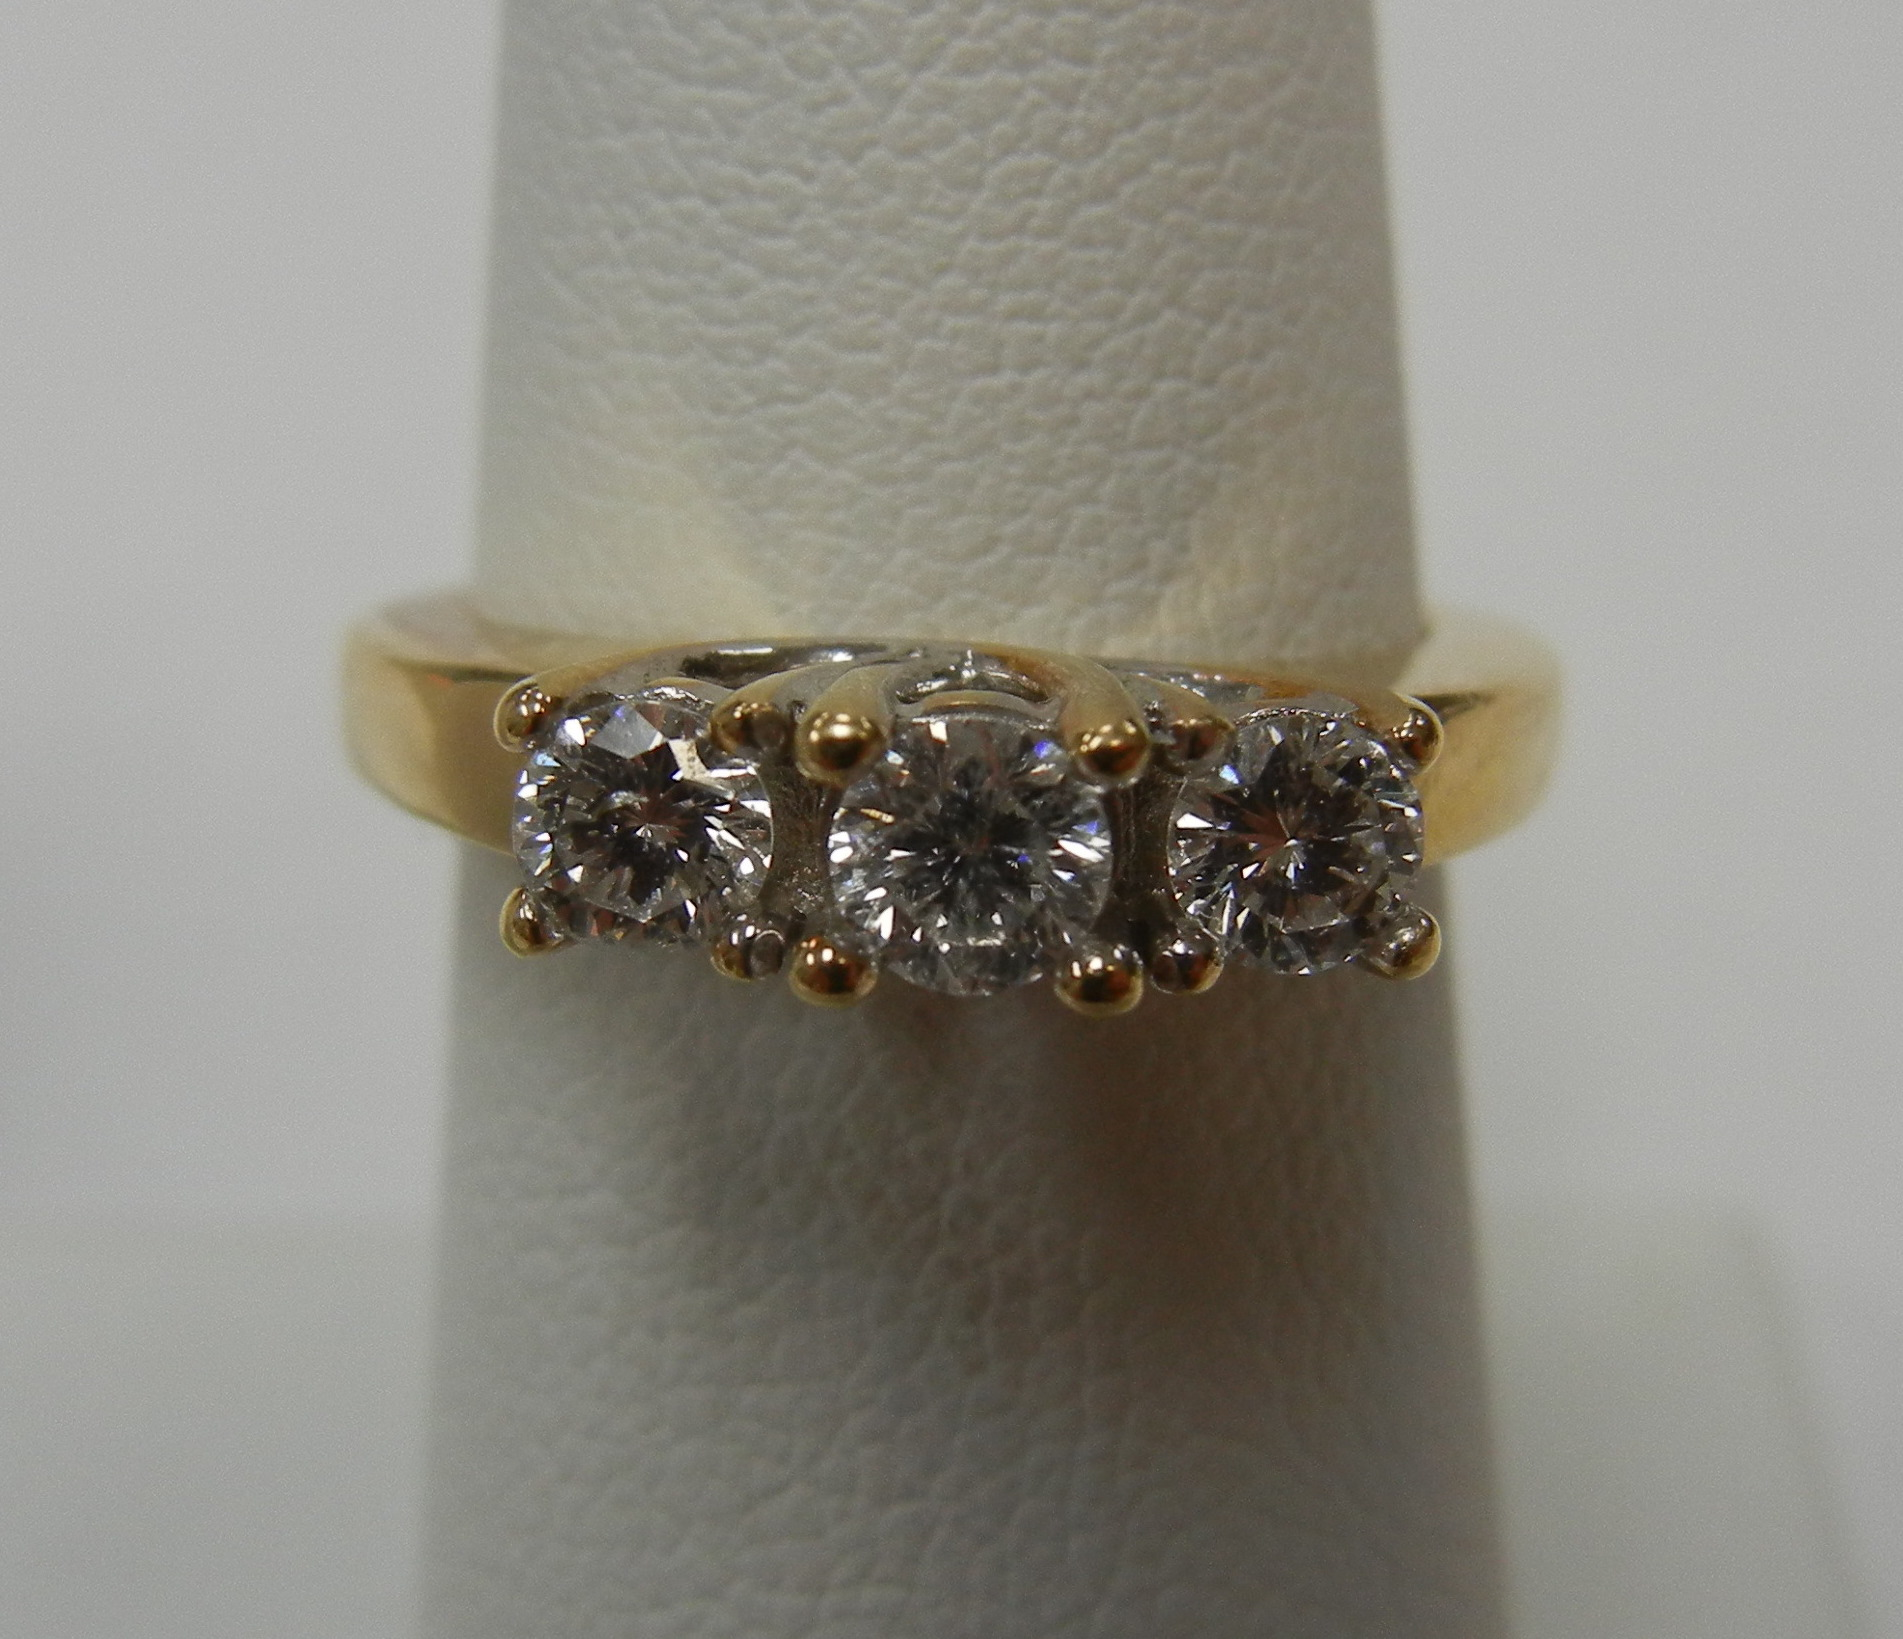 18 KT YELLOW GOLD PAST PRESENT FUTURE RING - SIZE 5